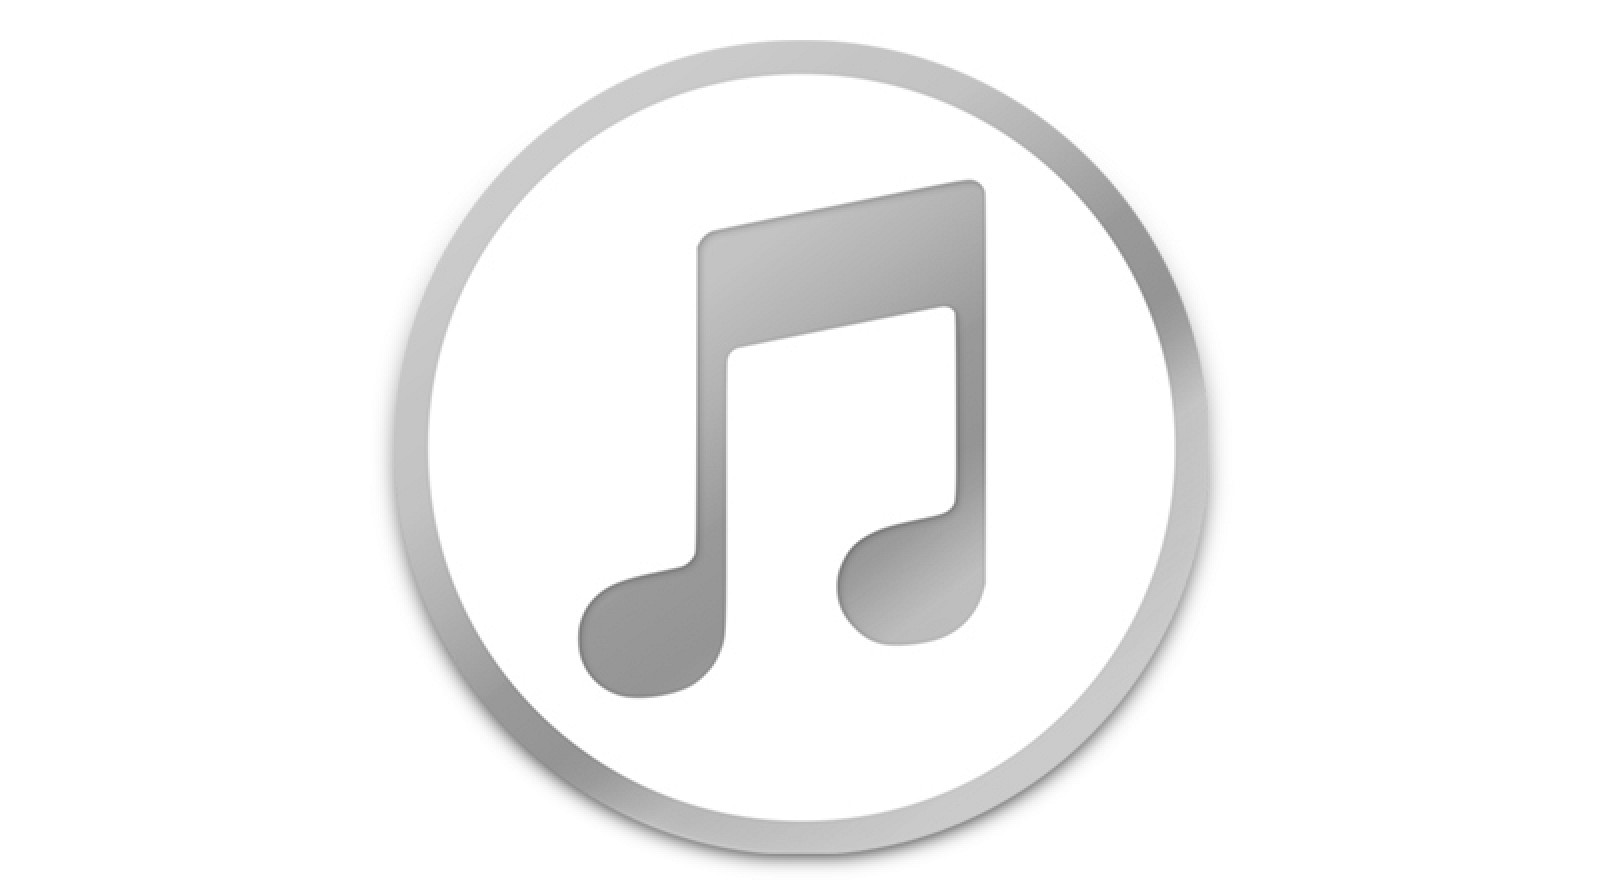 iTunes Expected to Be Retired After Over 18 Years - MacRumors